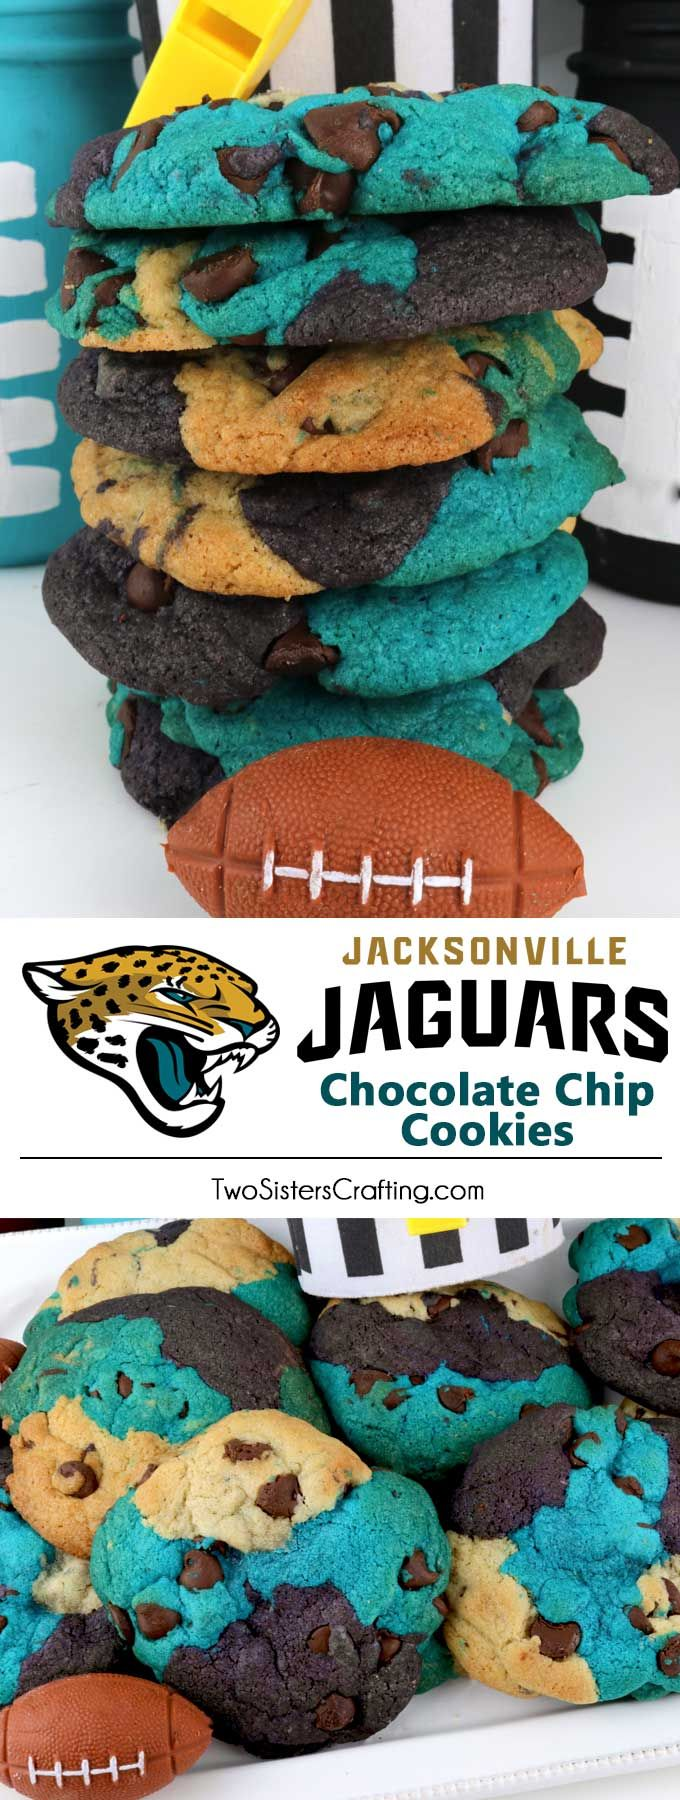 Jacksonville Jaguars Chocolate Chip Cookies - a classic cookie recipe suited up in team colors. Super easy to make and it will definitely wow your family and friends as a Football Game Day dessert or a Super Bowl Party Food. Go Jaguars! Pin this fun Super Bowl treat for later and follow us for . more Super Bowl Food Ideas. #JacksonvilleJaguars #Jaguars #GameDayTreat #SuperBowl #SuperBowlParty #JacksonvilleJaguarsFood